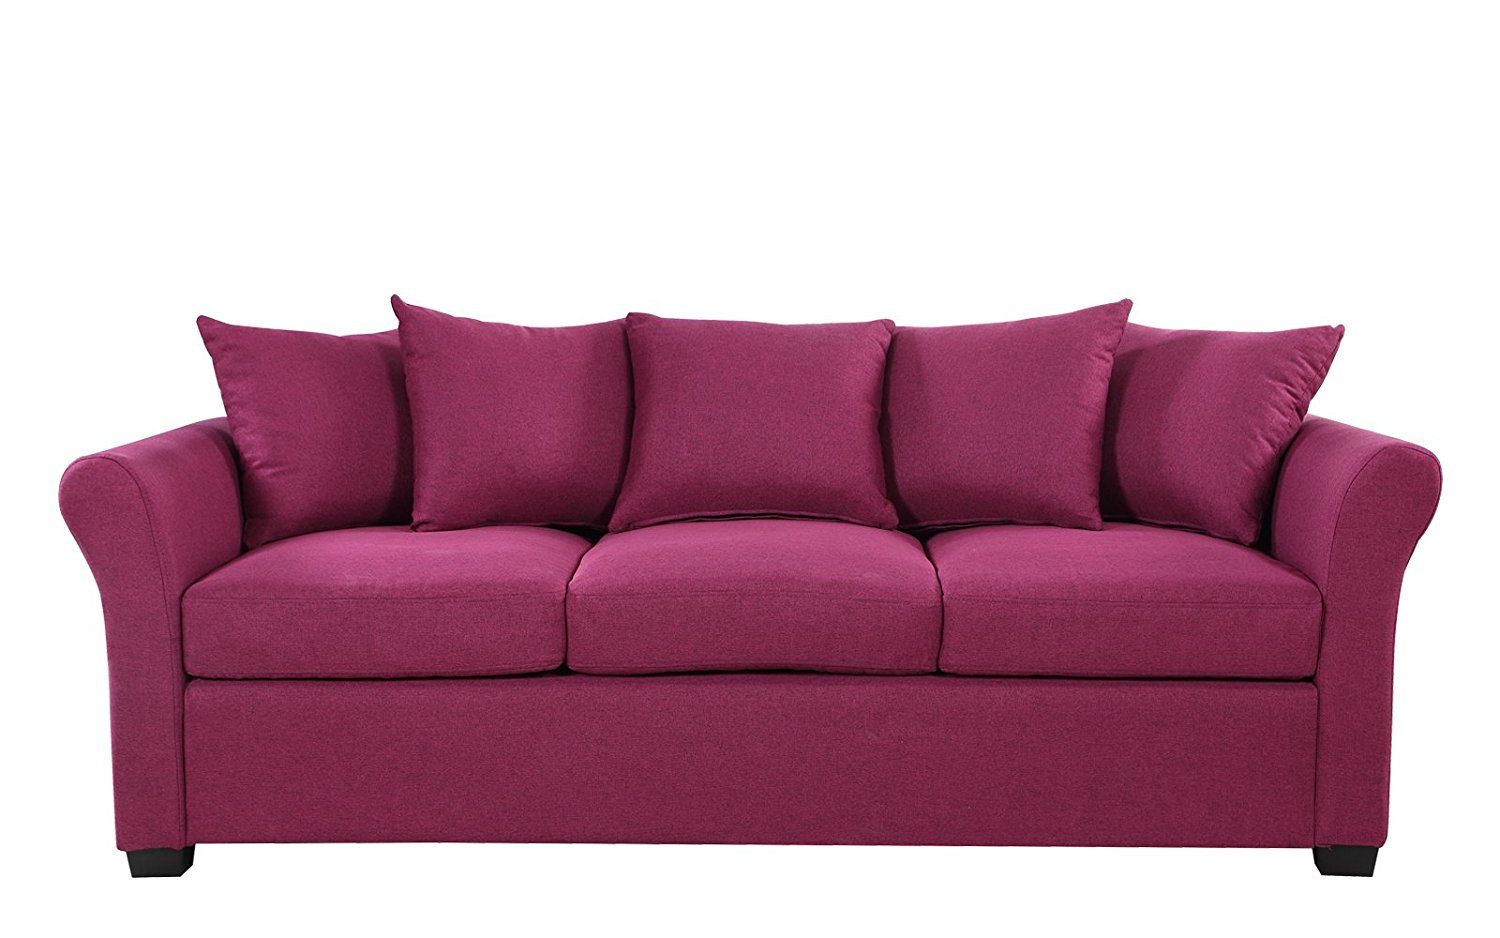 Classic And Traditional Ultra Comfortable Linen Fabric Sofa Living Room Fabric Couch Purple